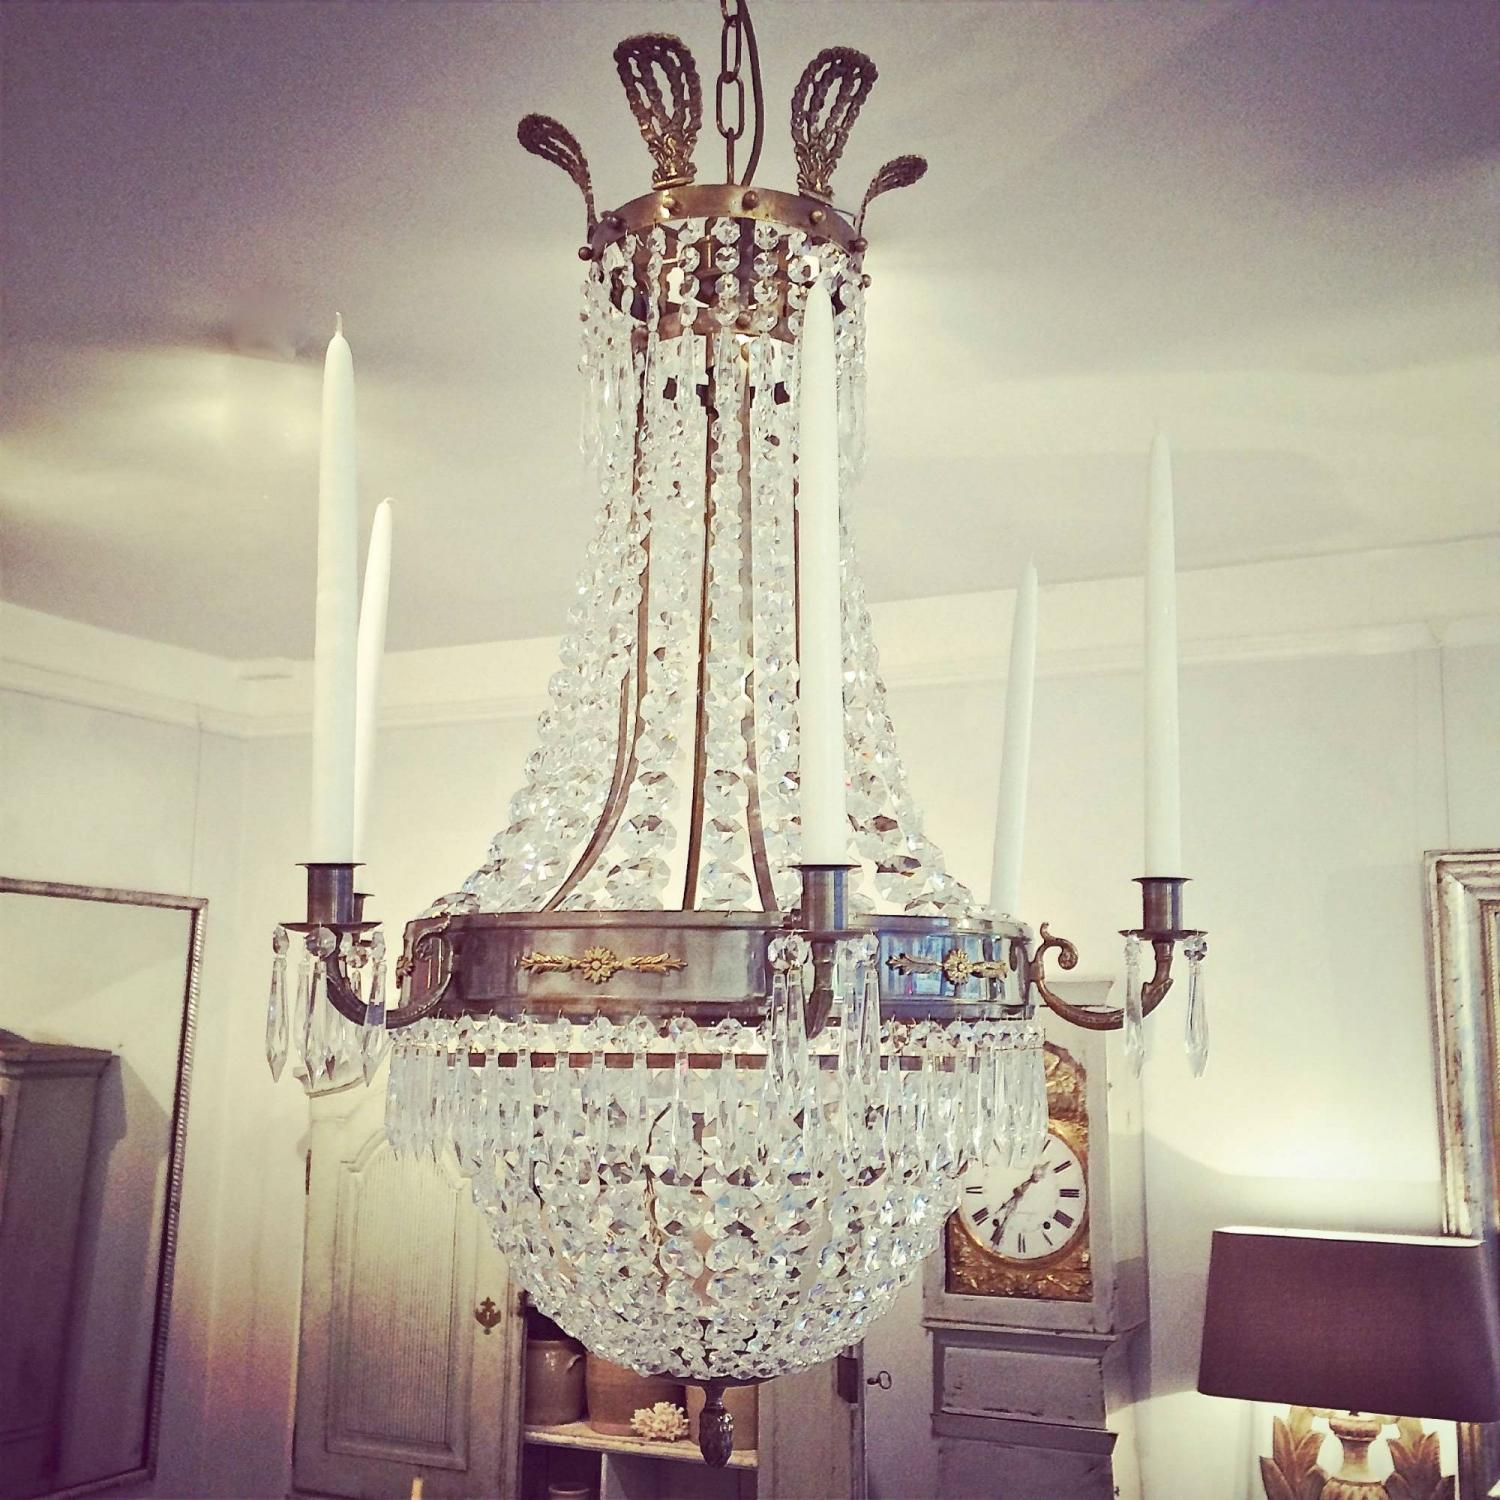 LARGE SWEDISH EMPIRE STYLE CHANDELIER IN ANTIQUE BRASS